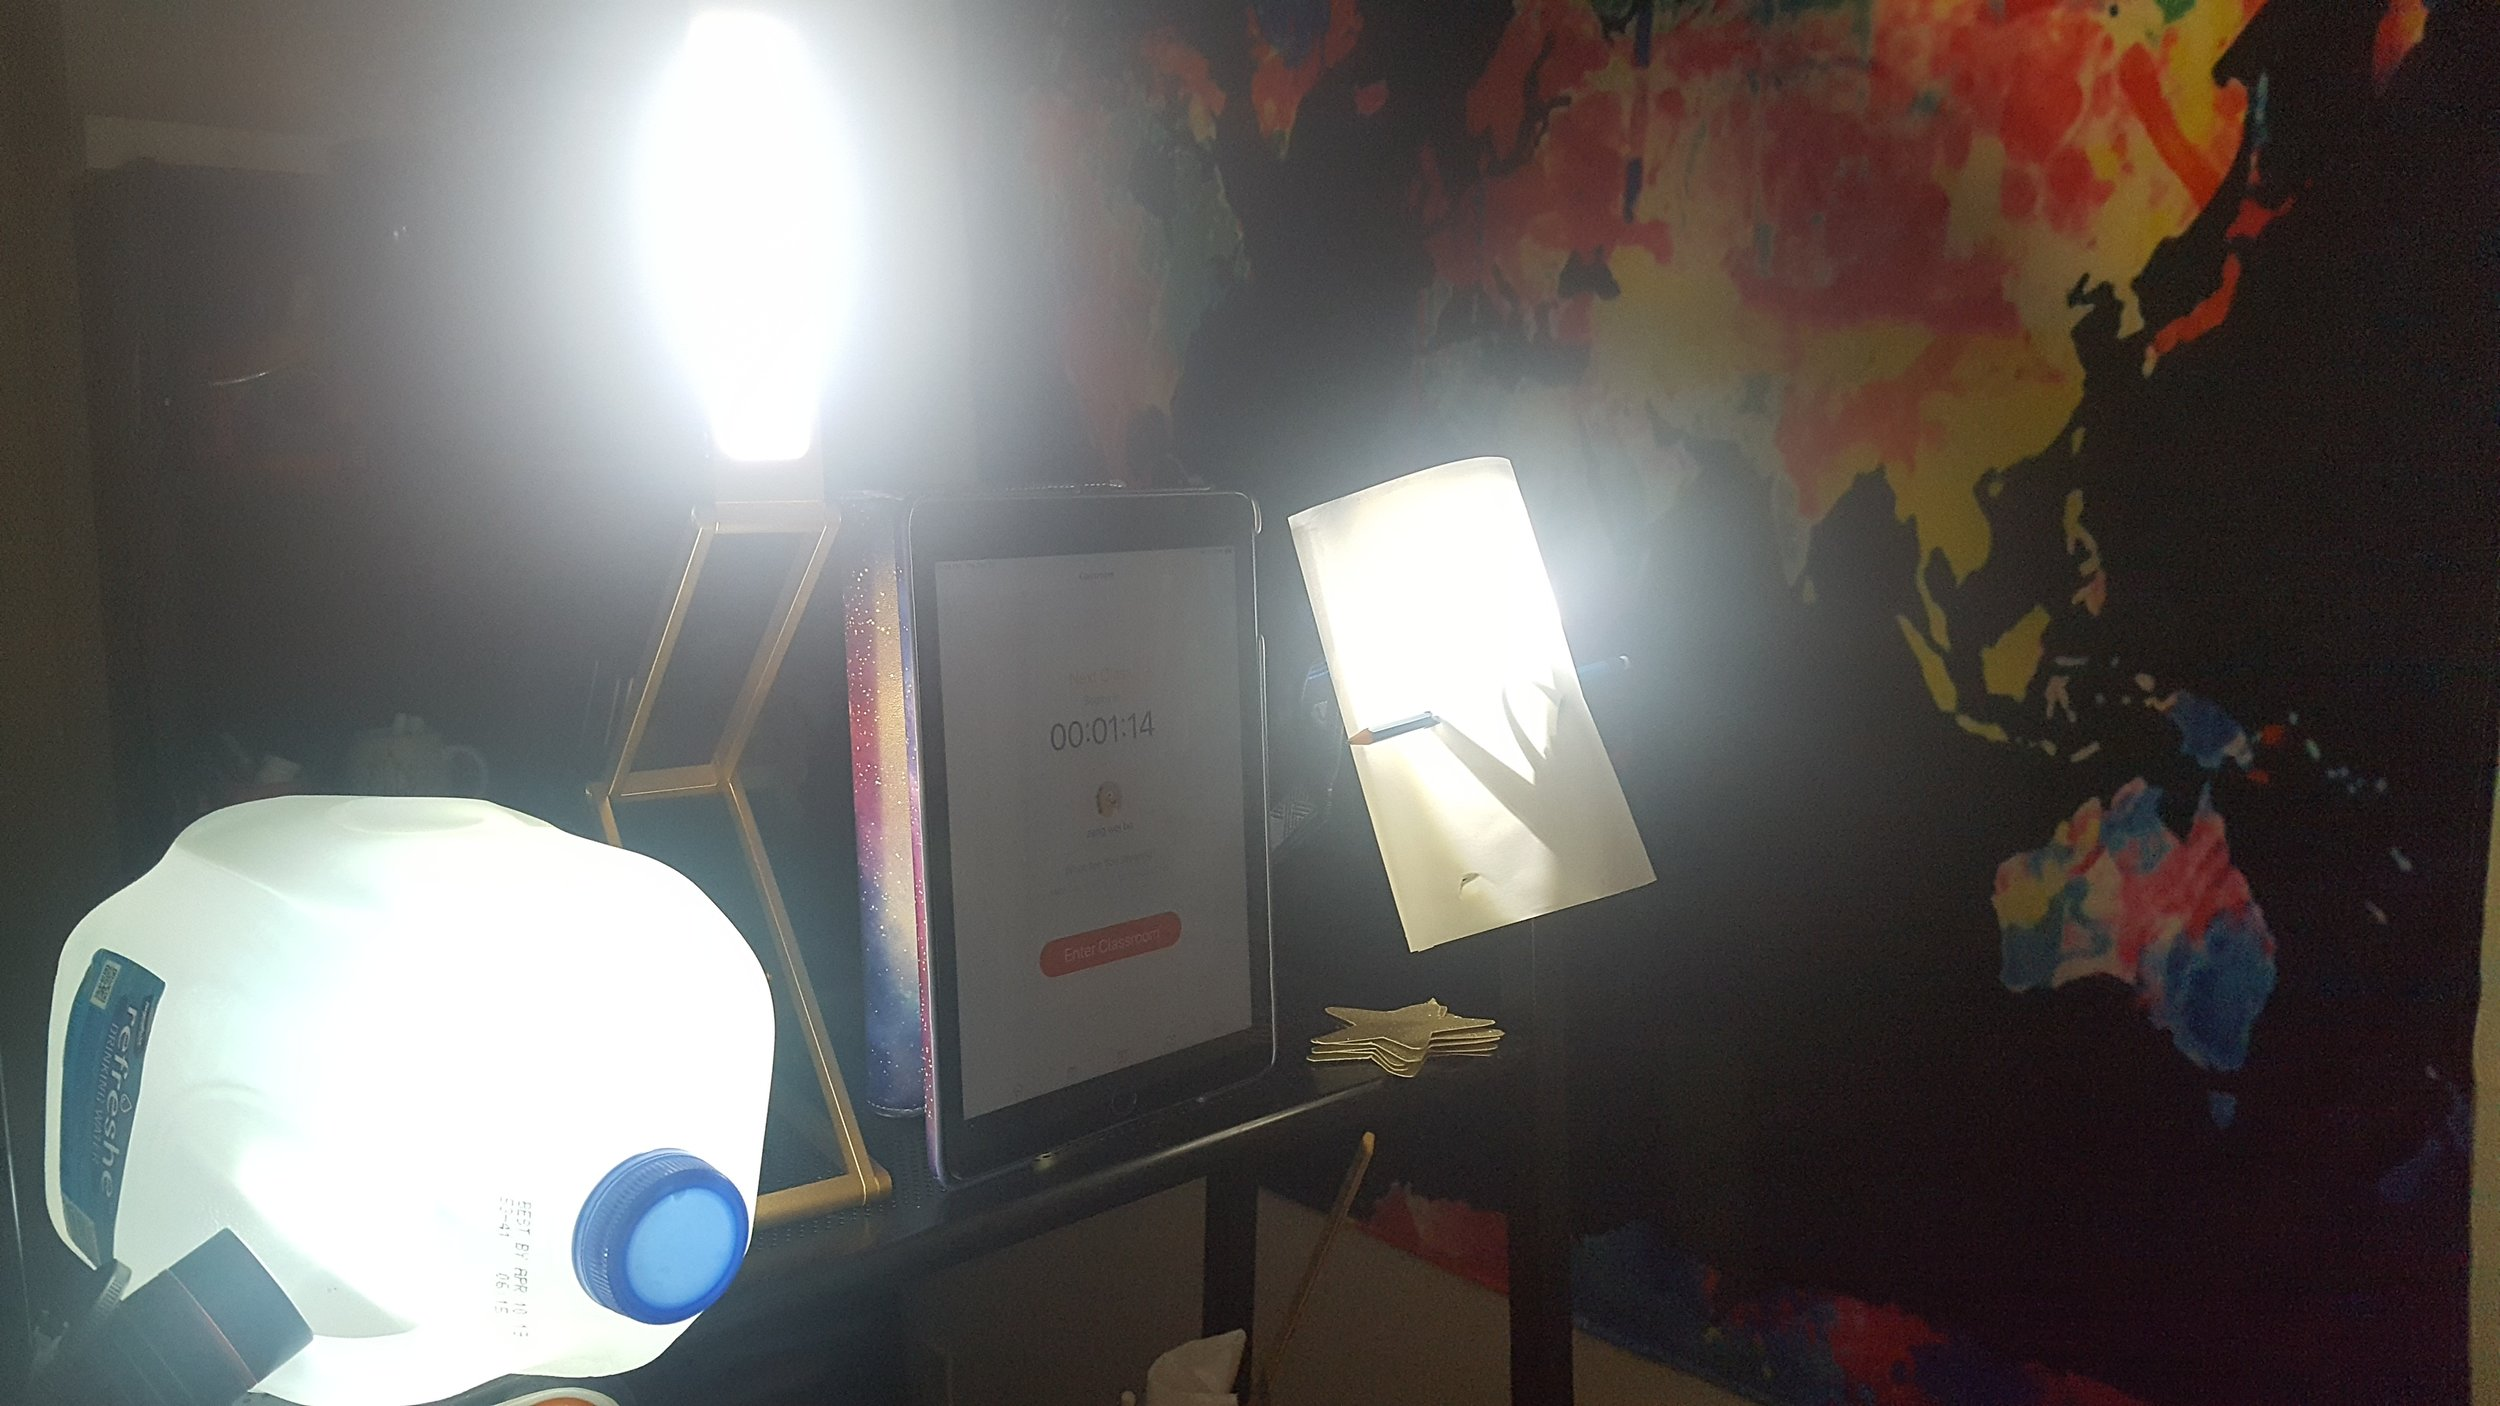 Back Up lighting to teach VIPKid in a power outage